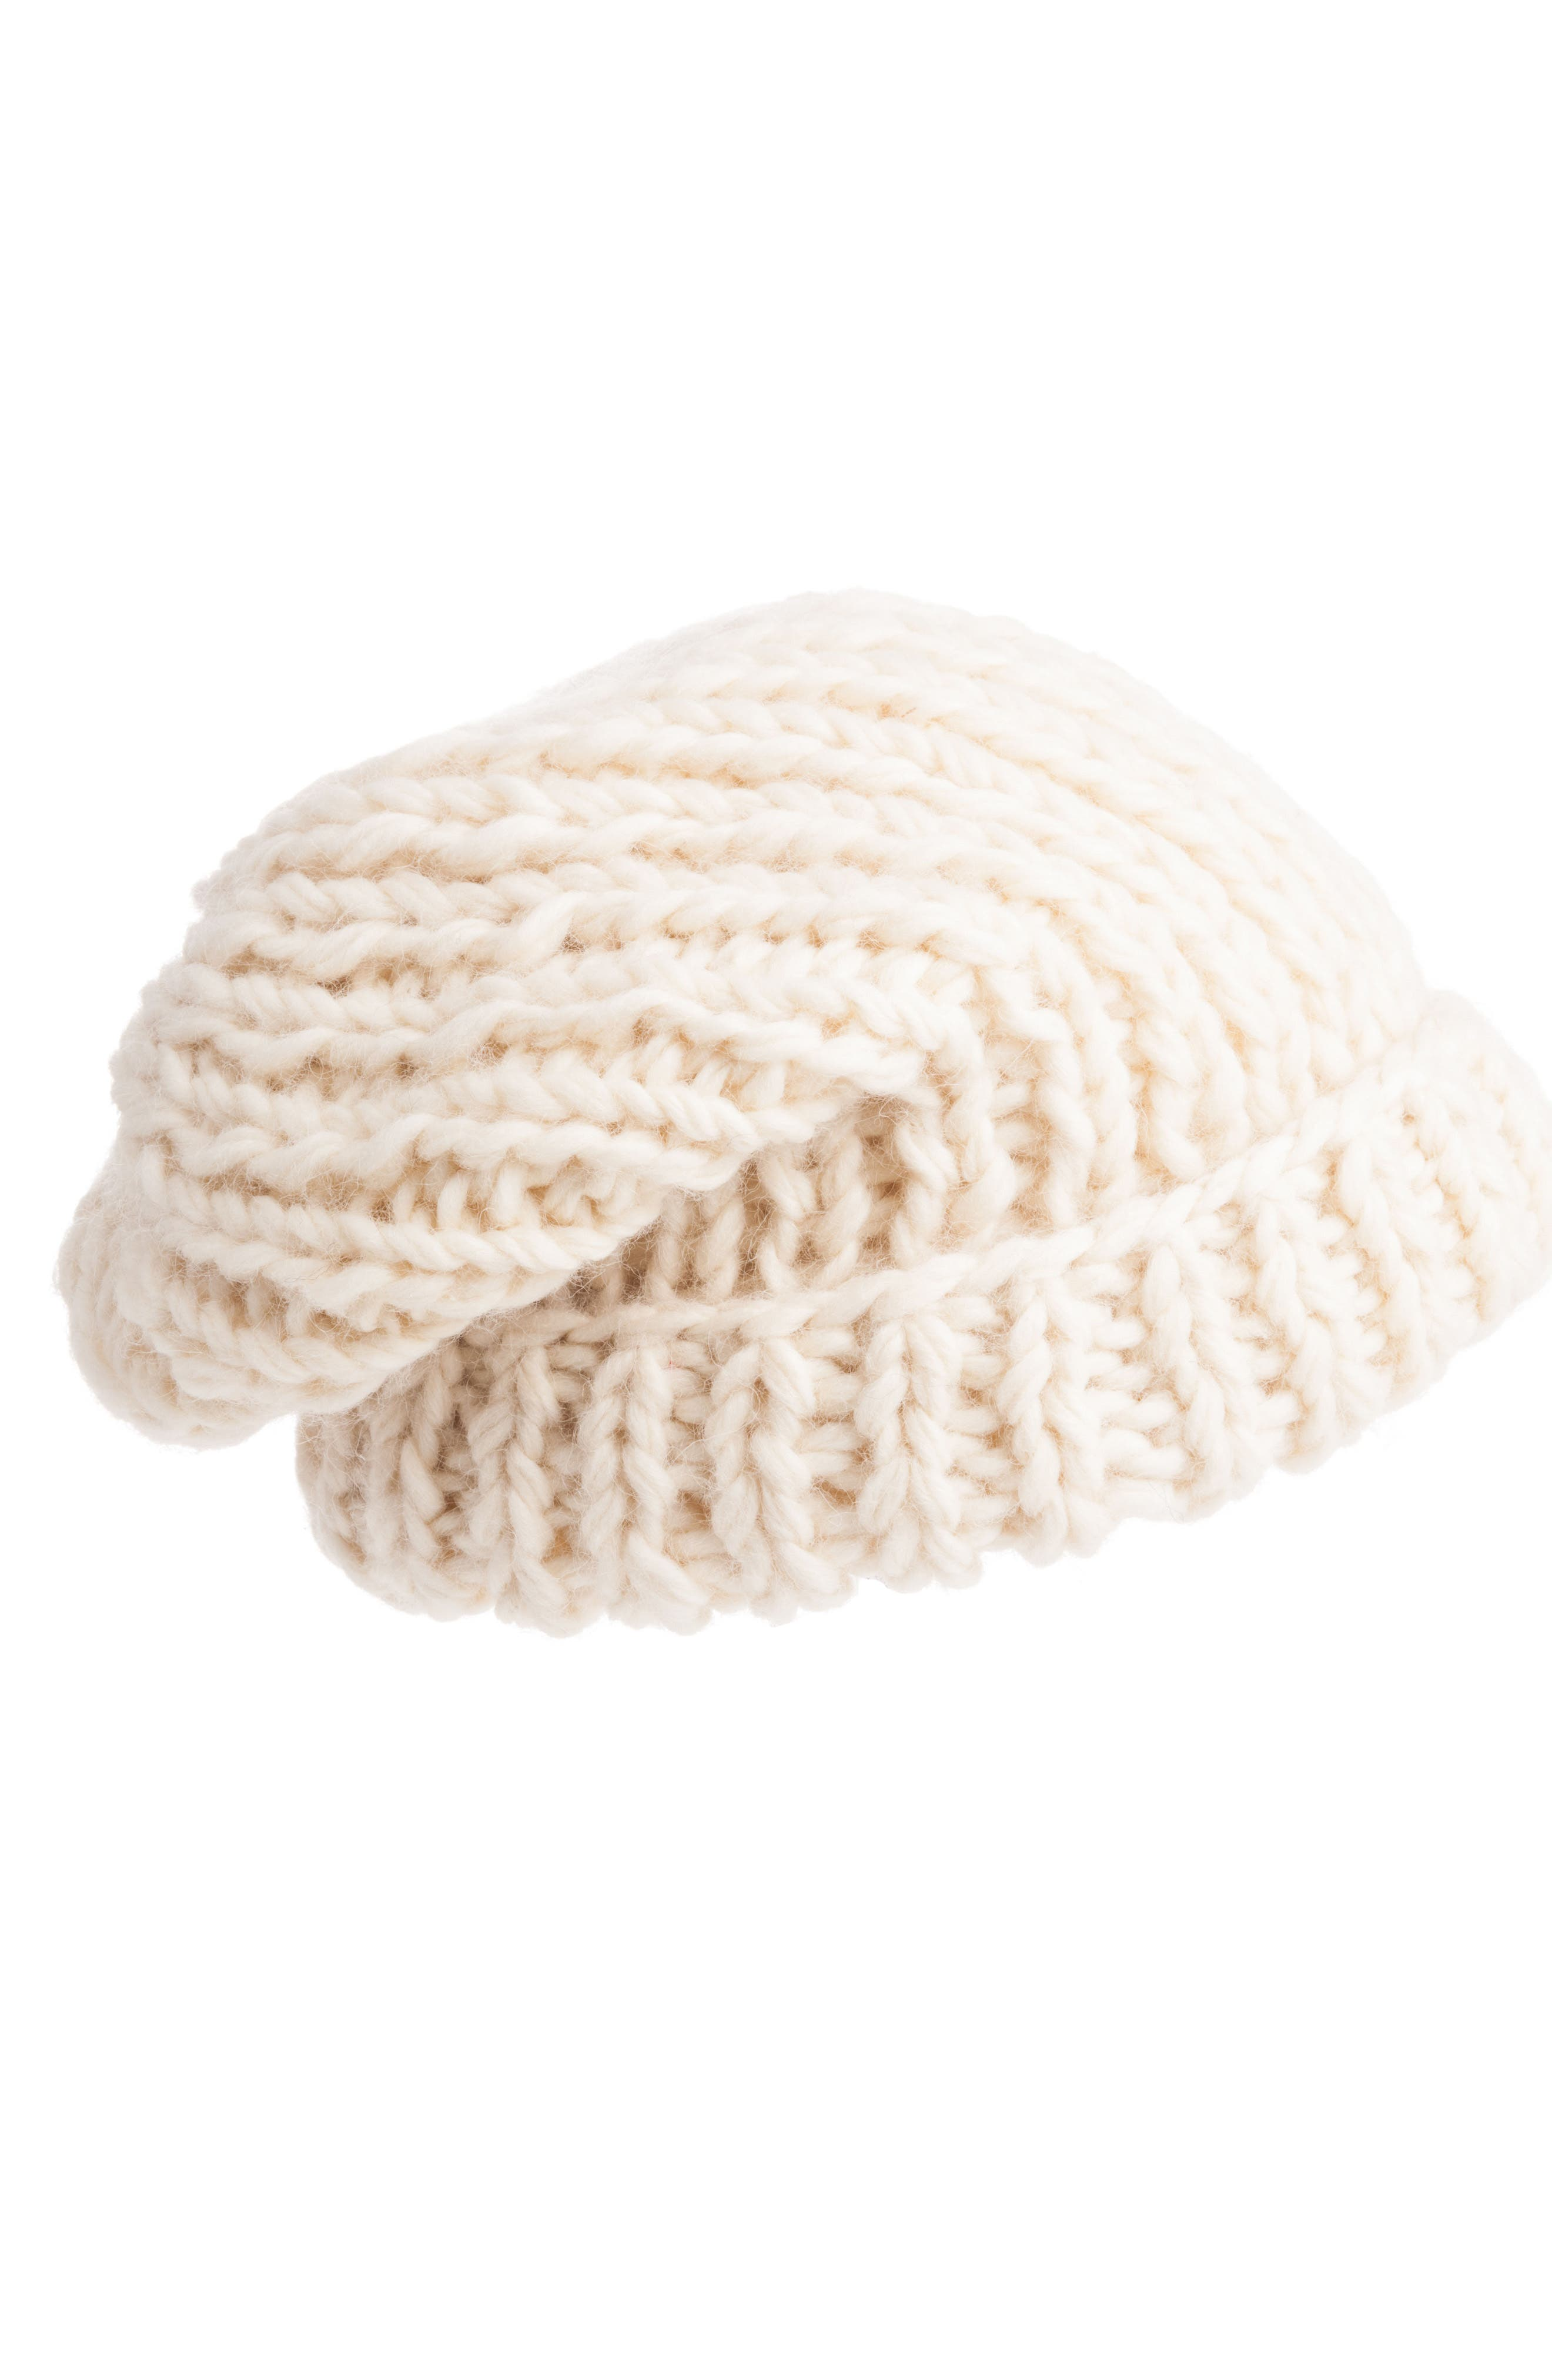 Nirvana Designs Chunky Knit Slouchy Wool Cap